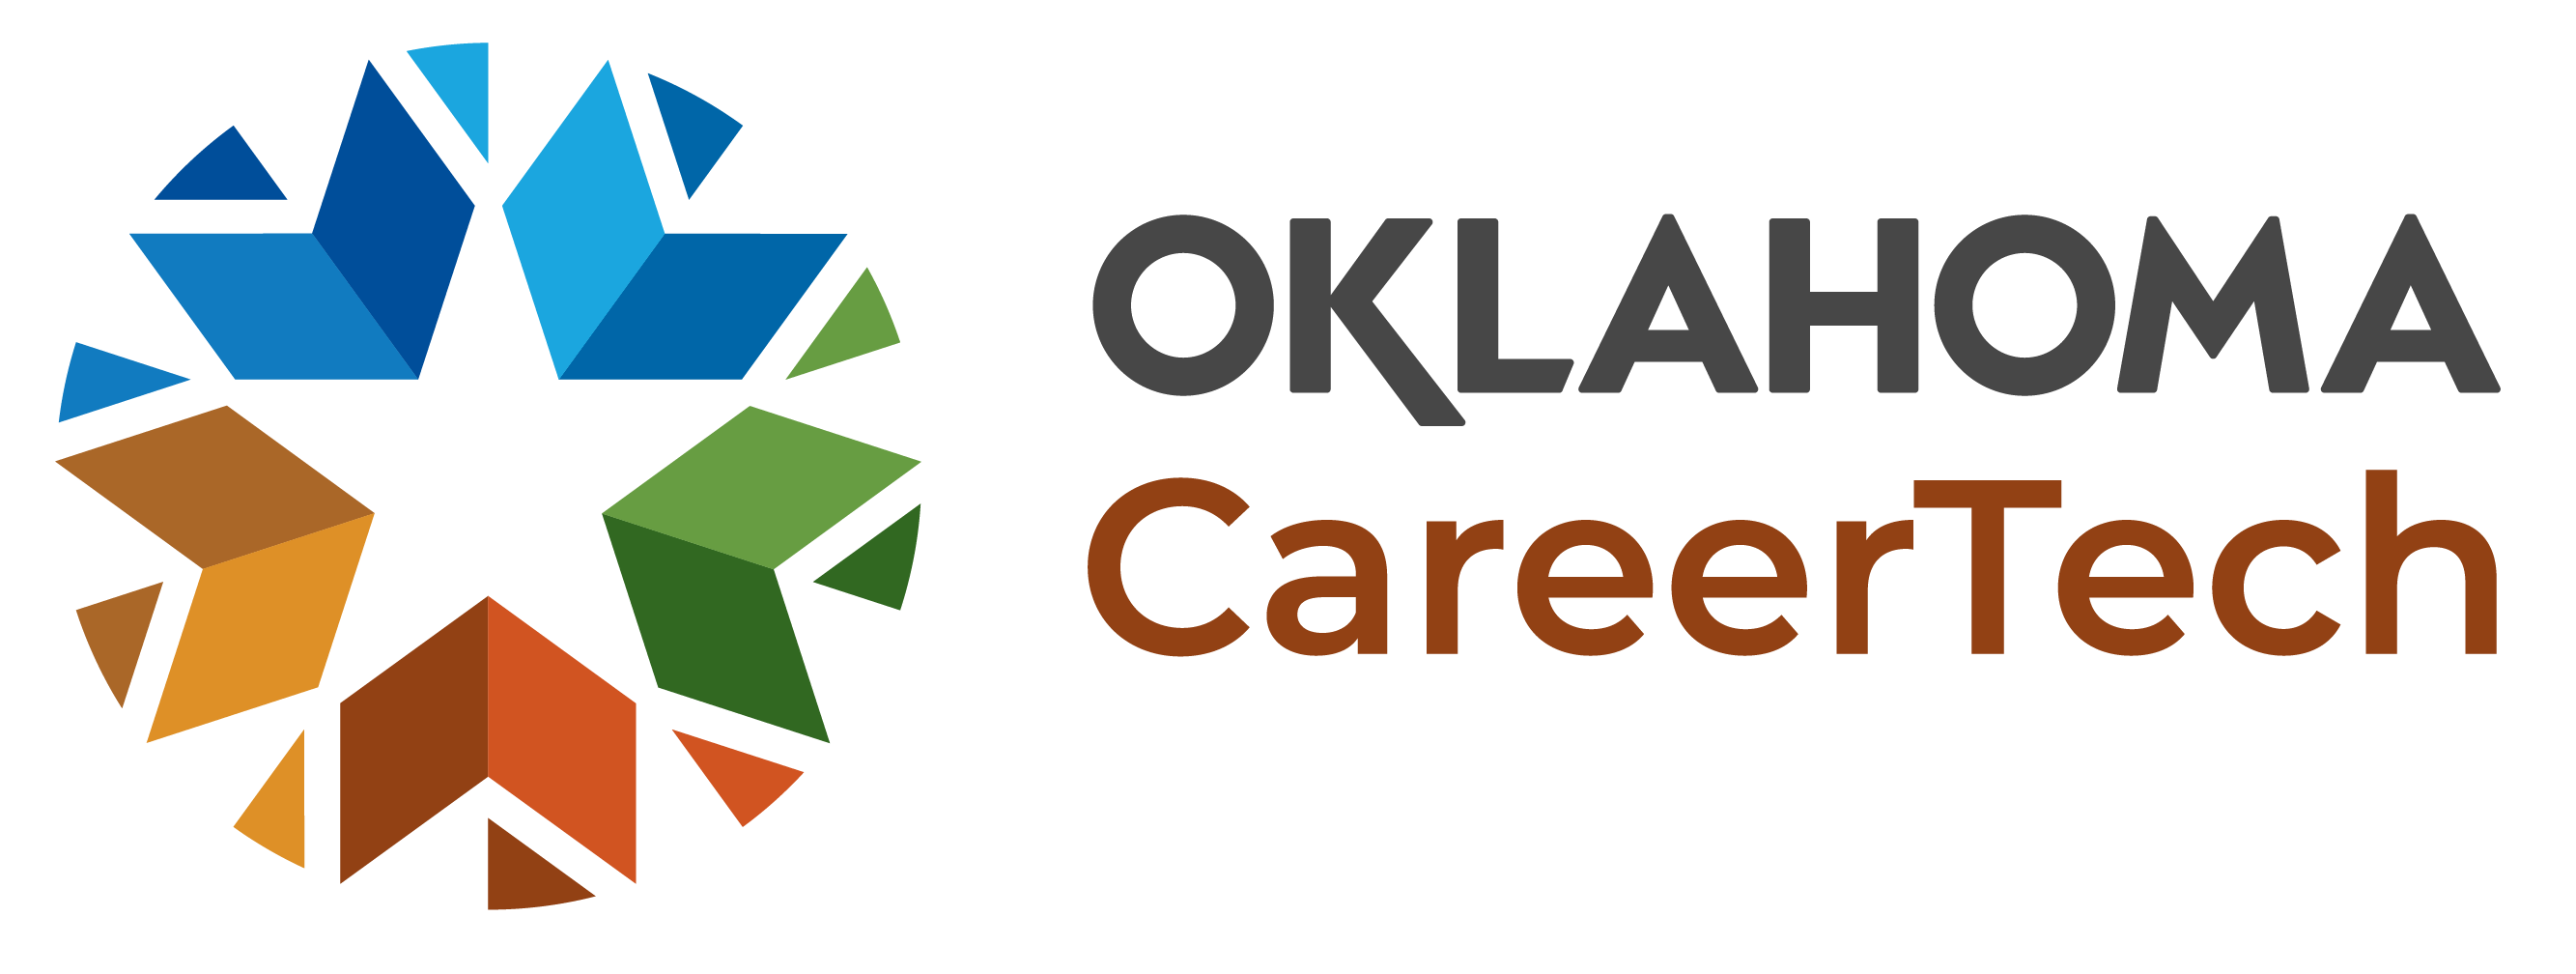 clear_CT_Clay_RGB-01.png  ;  Oklahoma = color 474747  ;  CareerTech = color 924114